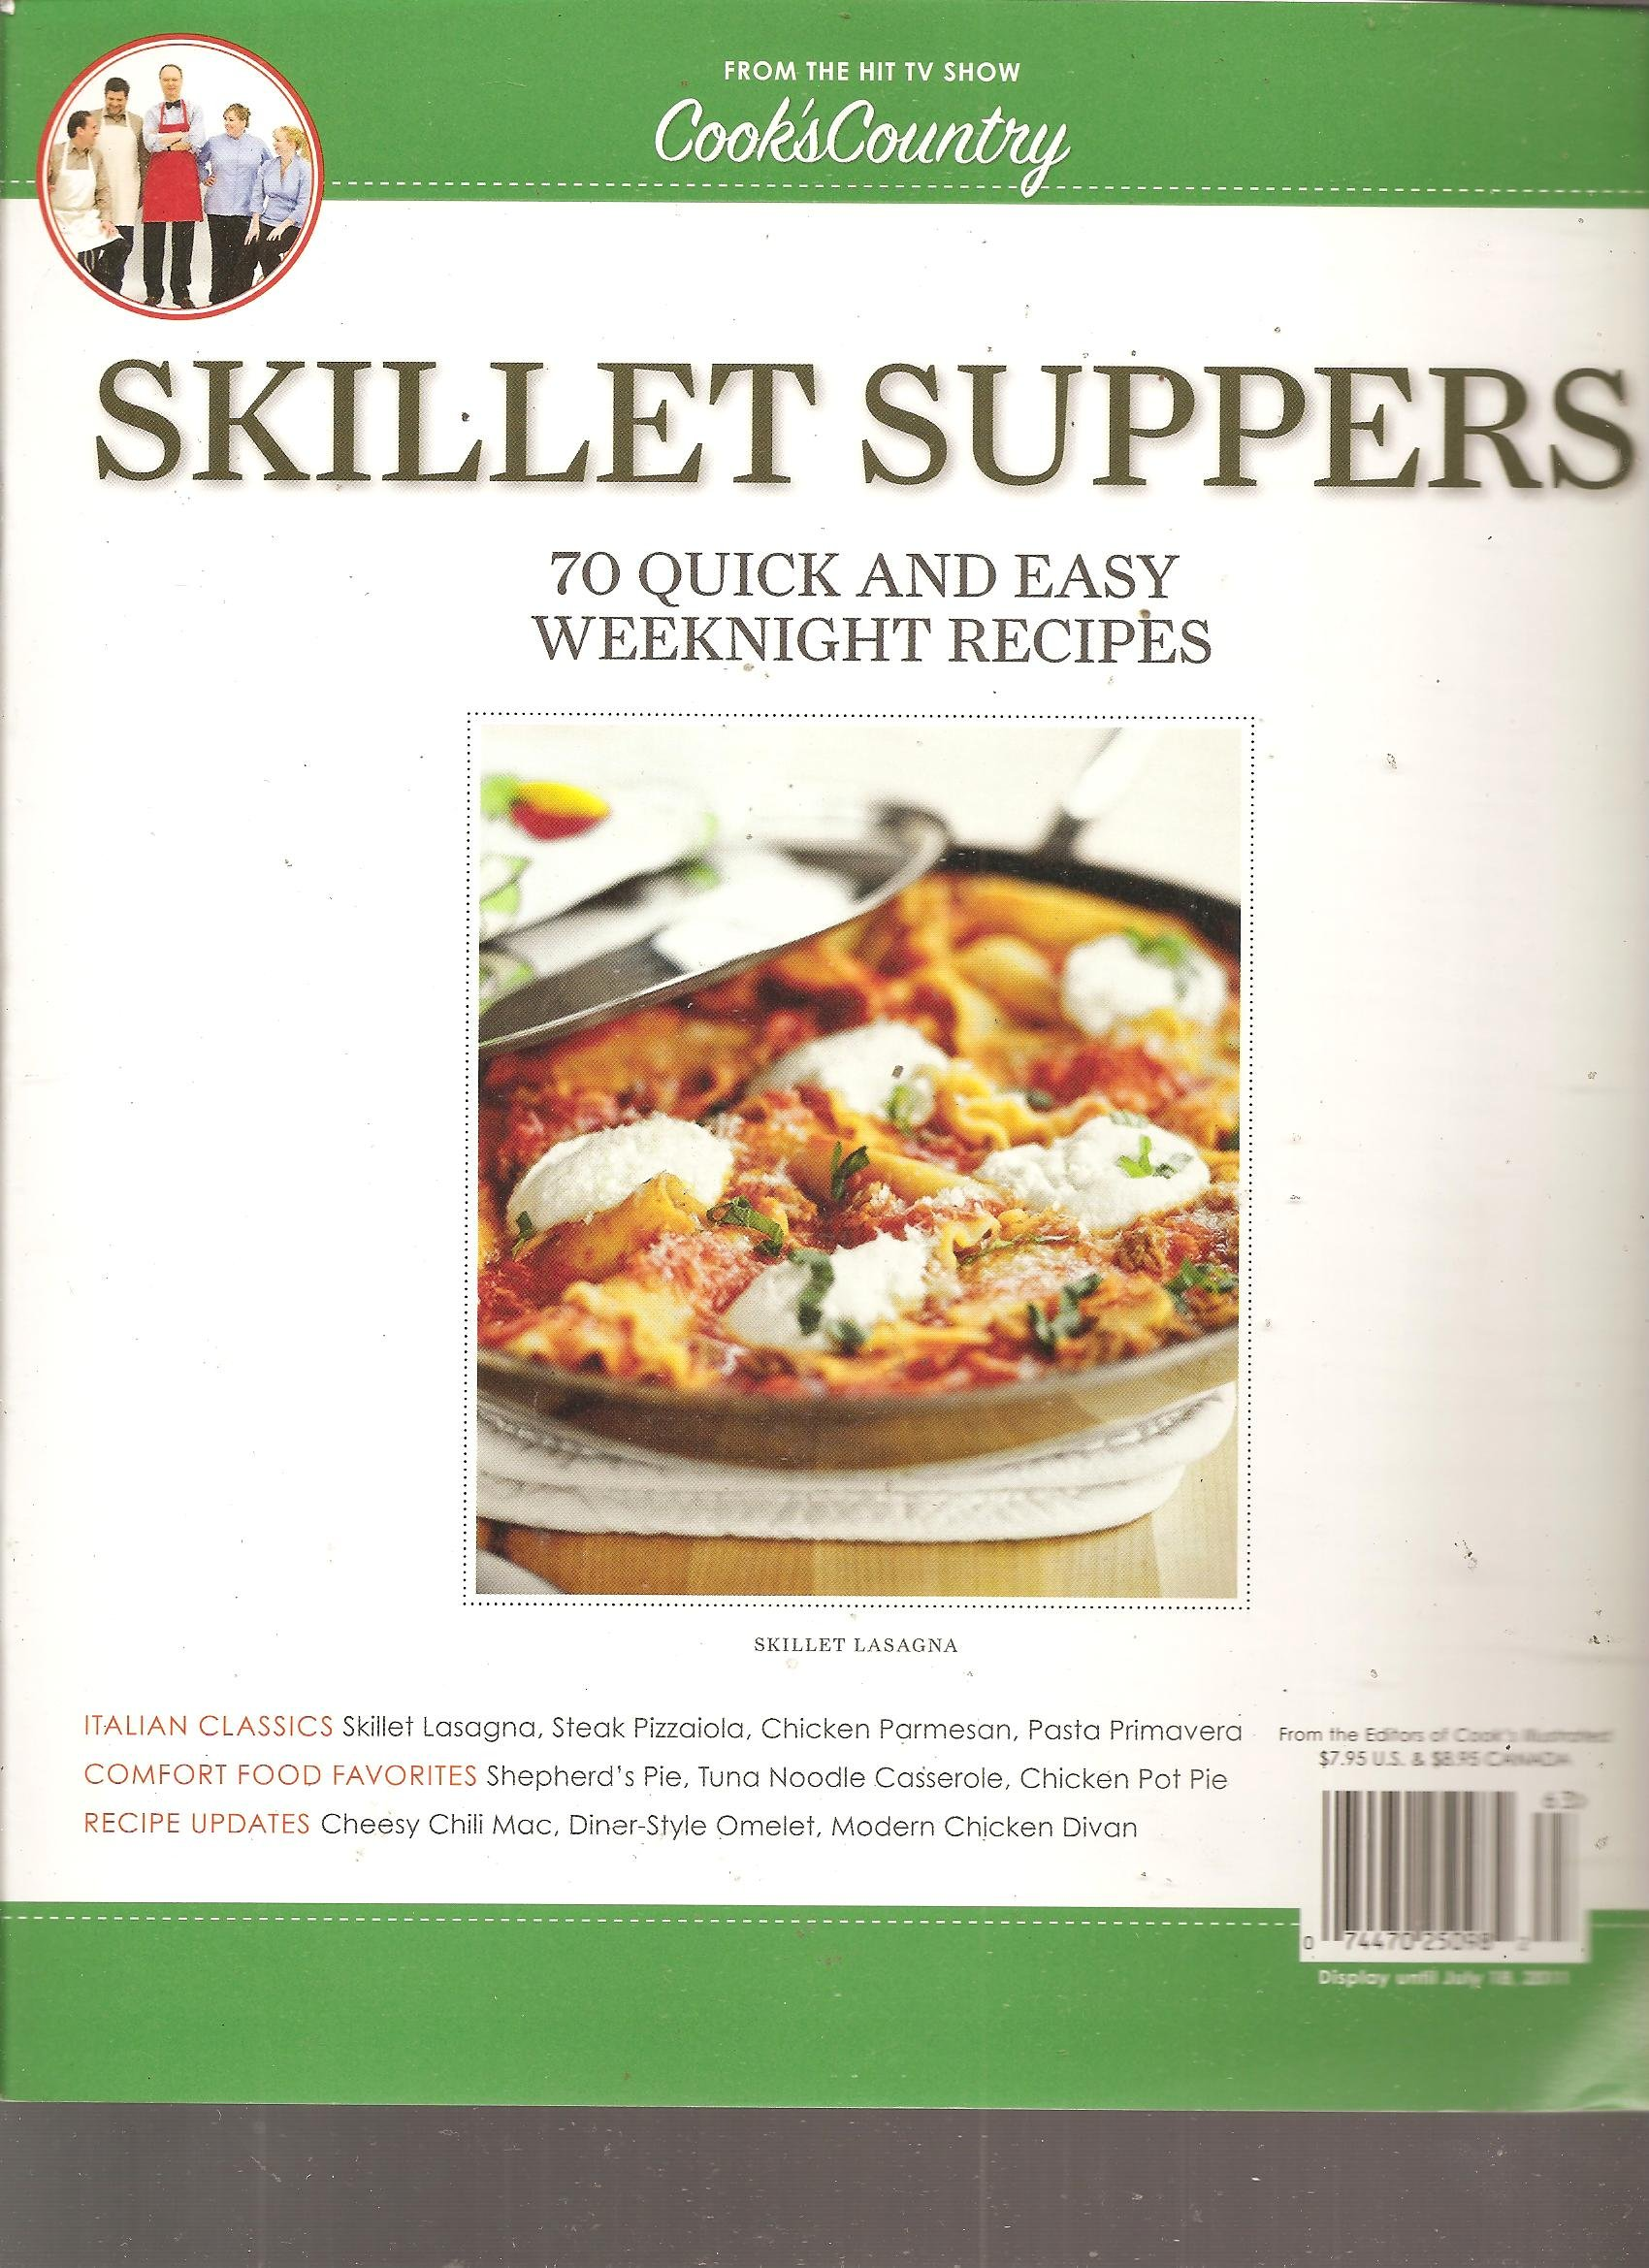 Cook S Country Magazine Skillet Suppers 70 Quick And Easy Weeknight Recipes 2011 Amazon Com Books